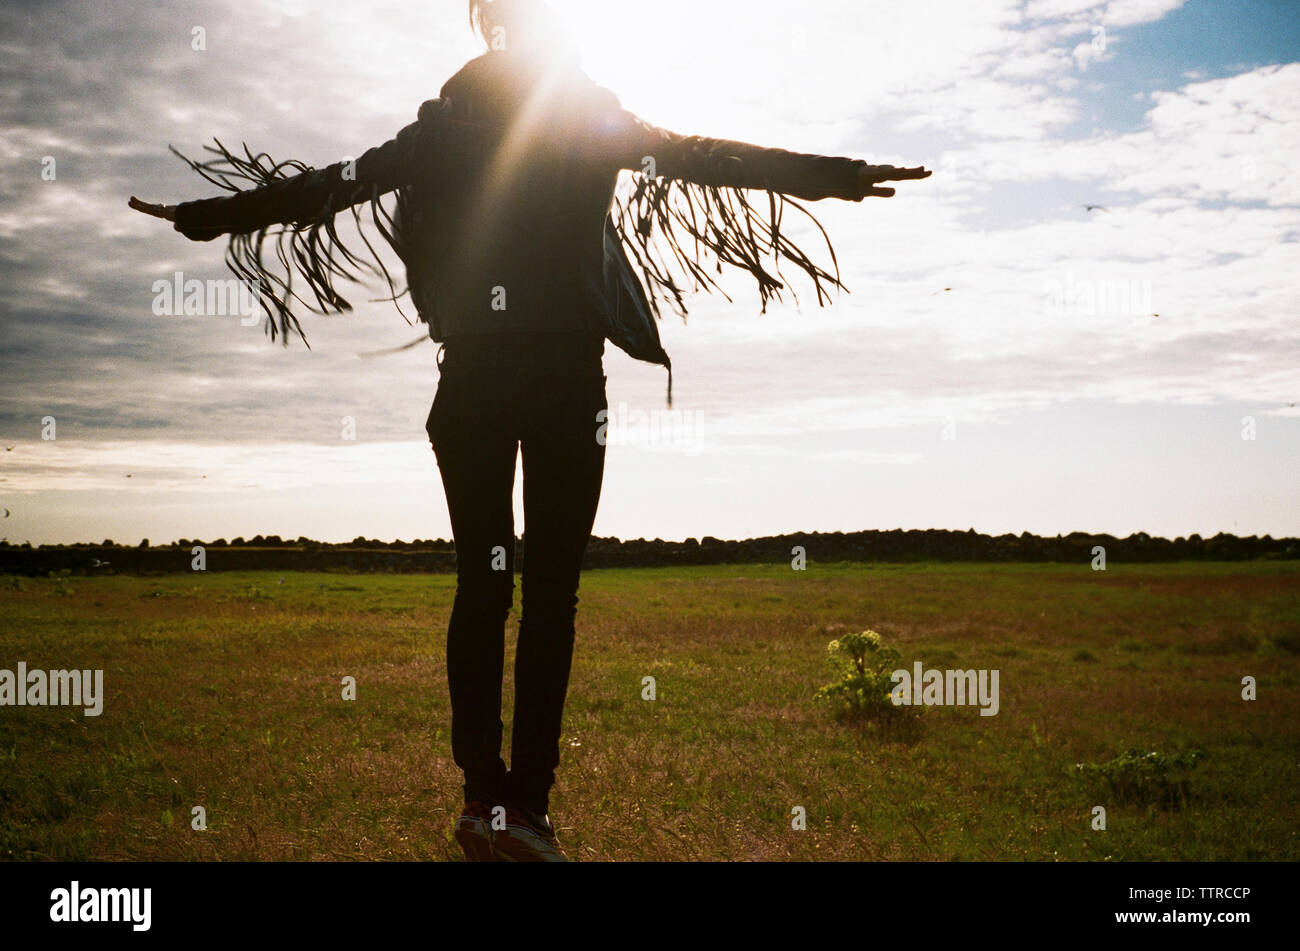 Rear view of excited woman jumping on field against sky - Stock Image